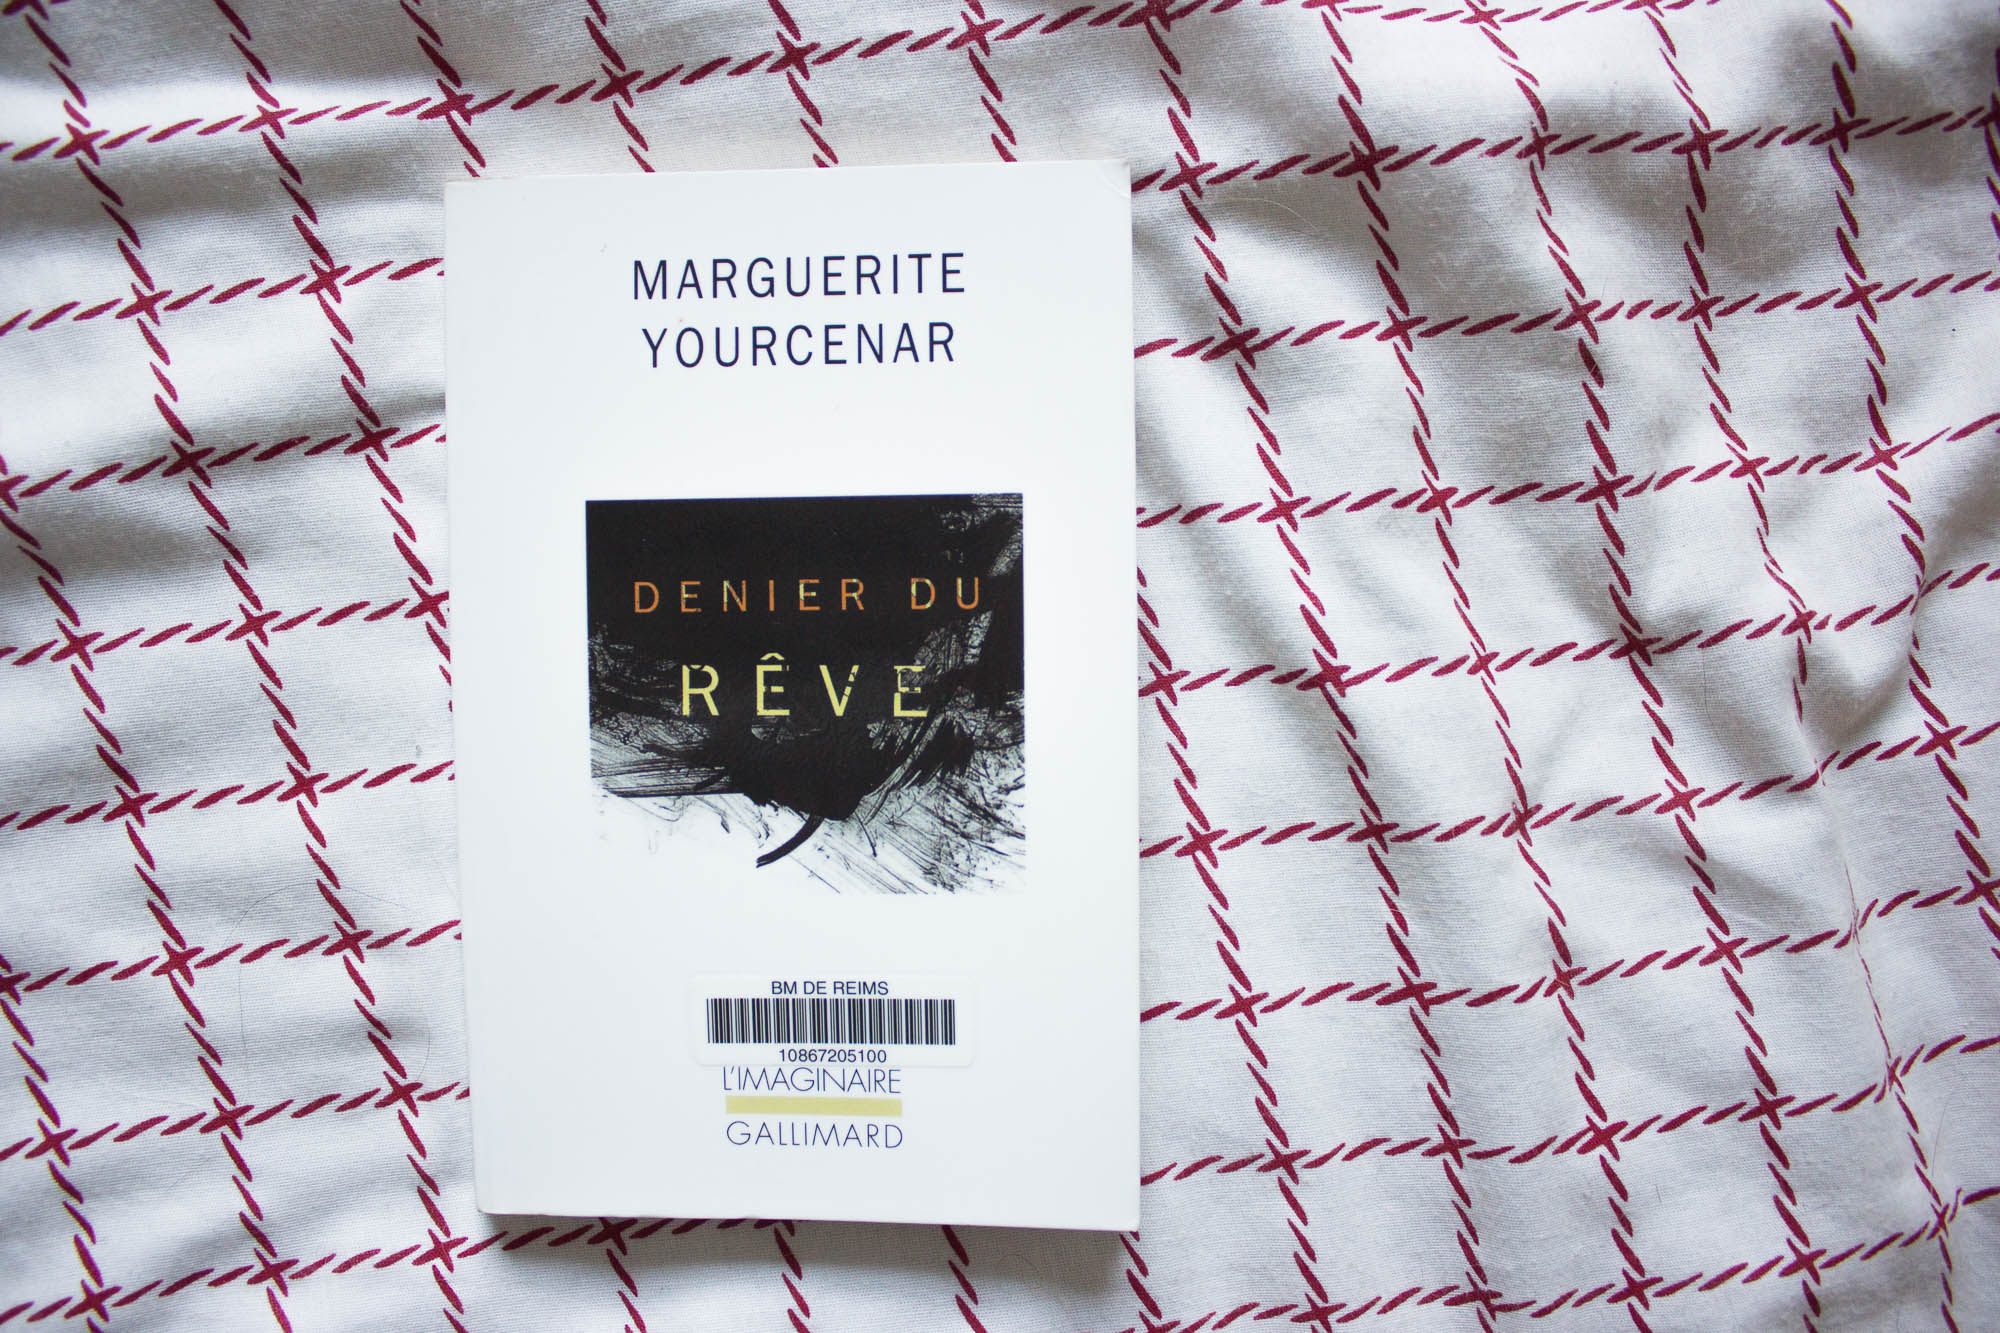 Denier du rêve, par Marguerite Yourcenar, surprenant de contemporain